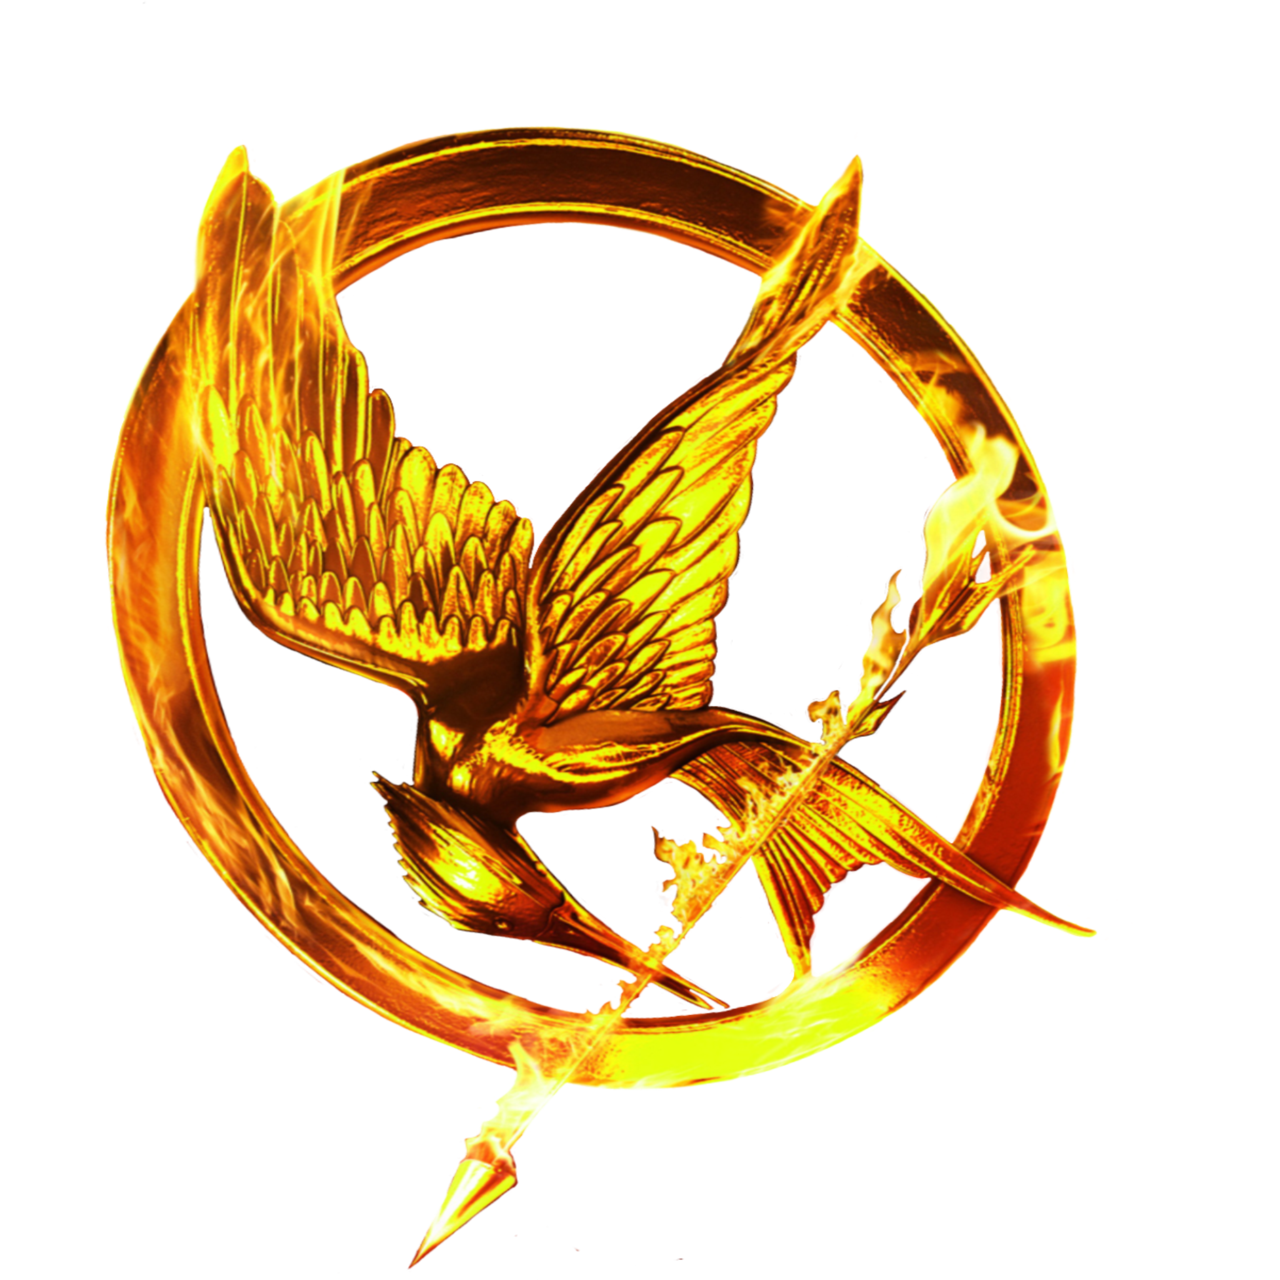 download the hunger games free png photo images and clipart freepngimg rh freepngimg com hunger games logo clip art